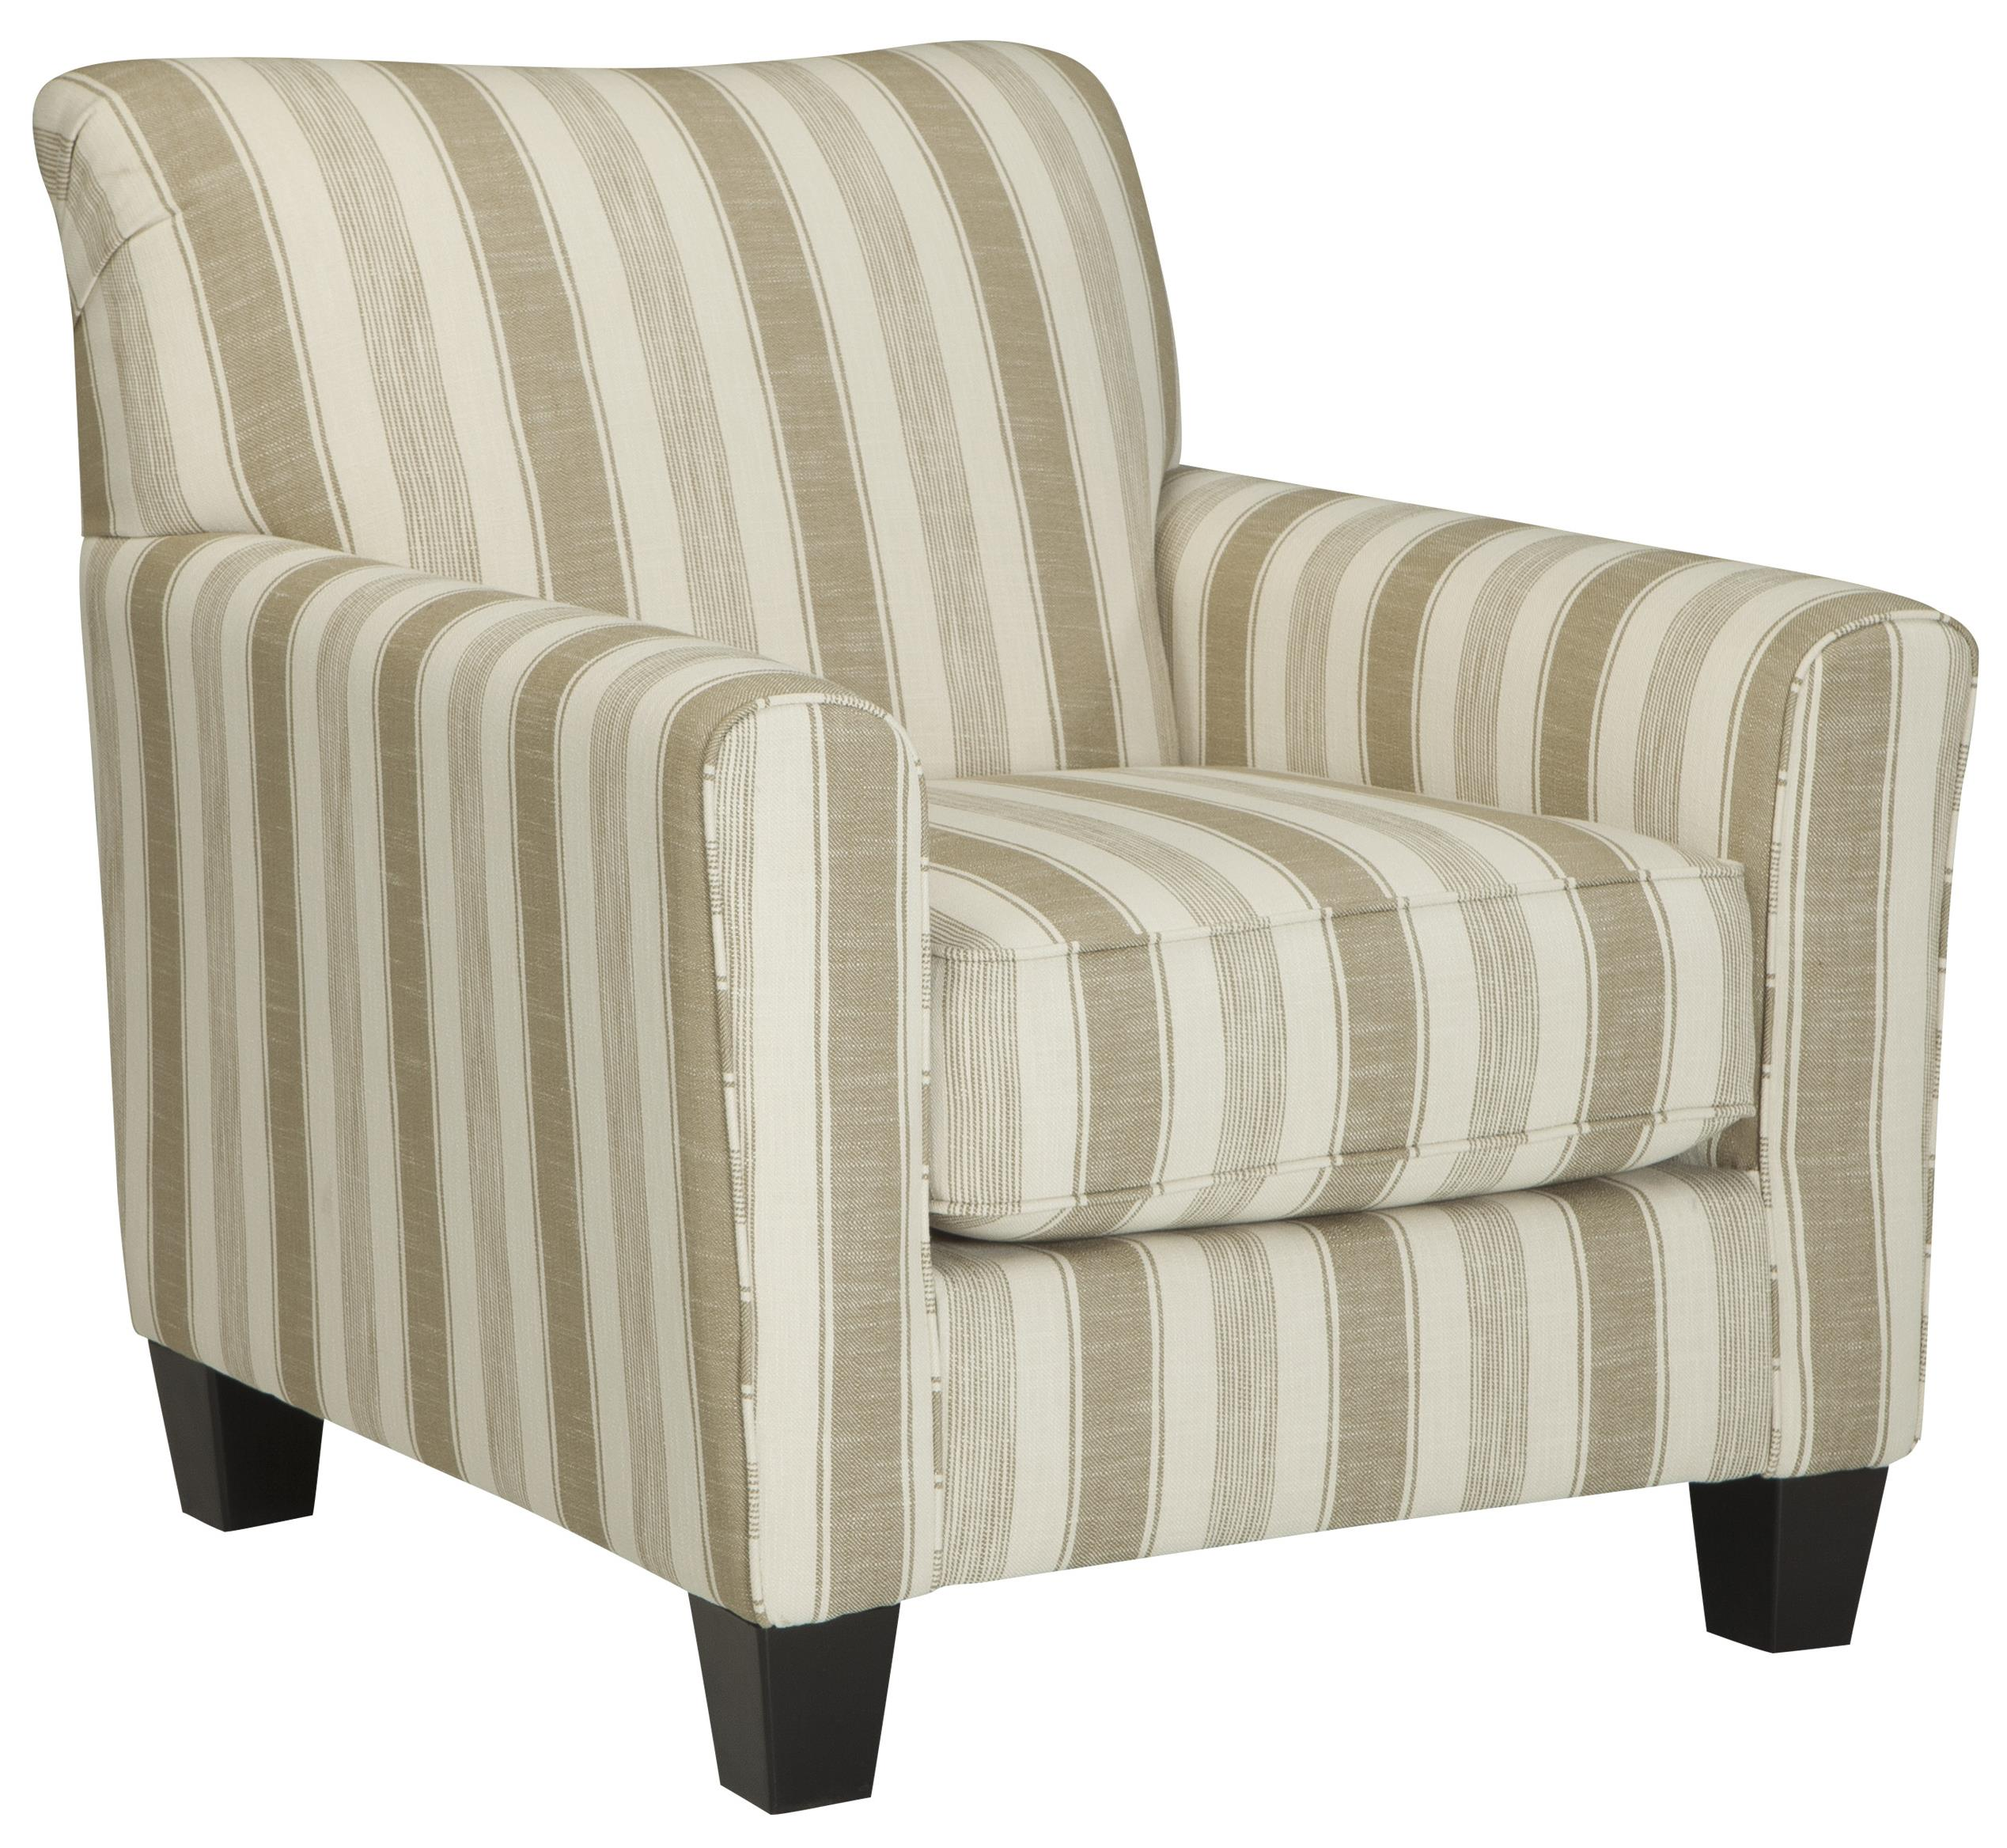 Laryn accent chair with neutral stripe fabric becker for Striped chairs living room